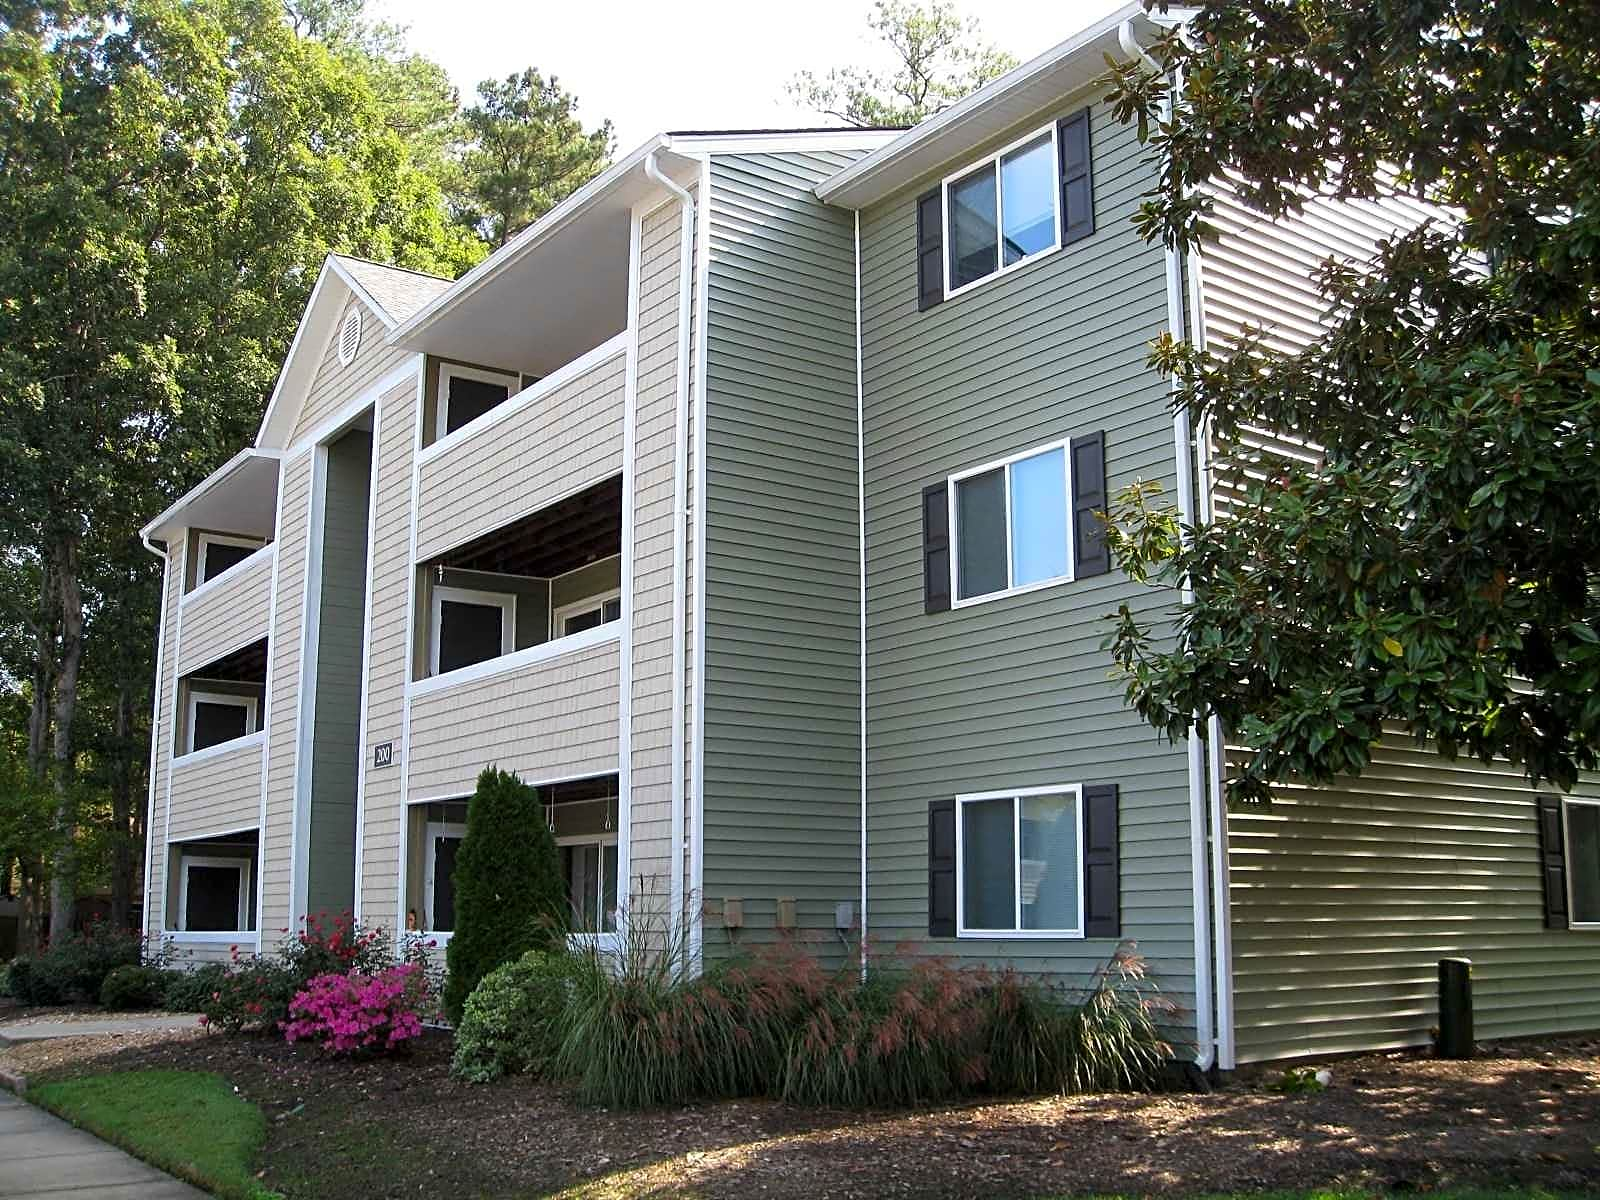 Woods Of Jefferson Apartments - Newport News, VA 23608